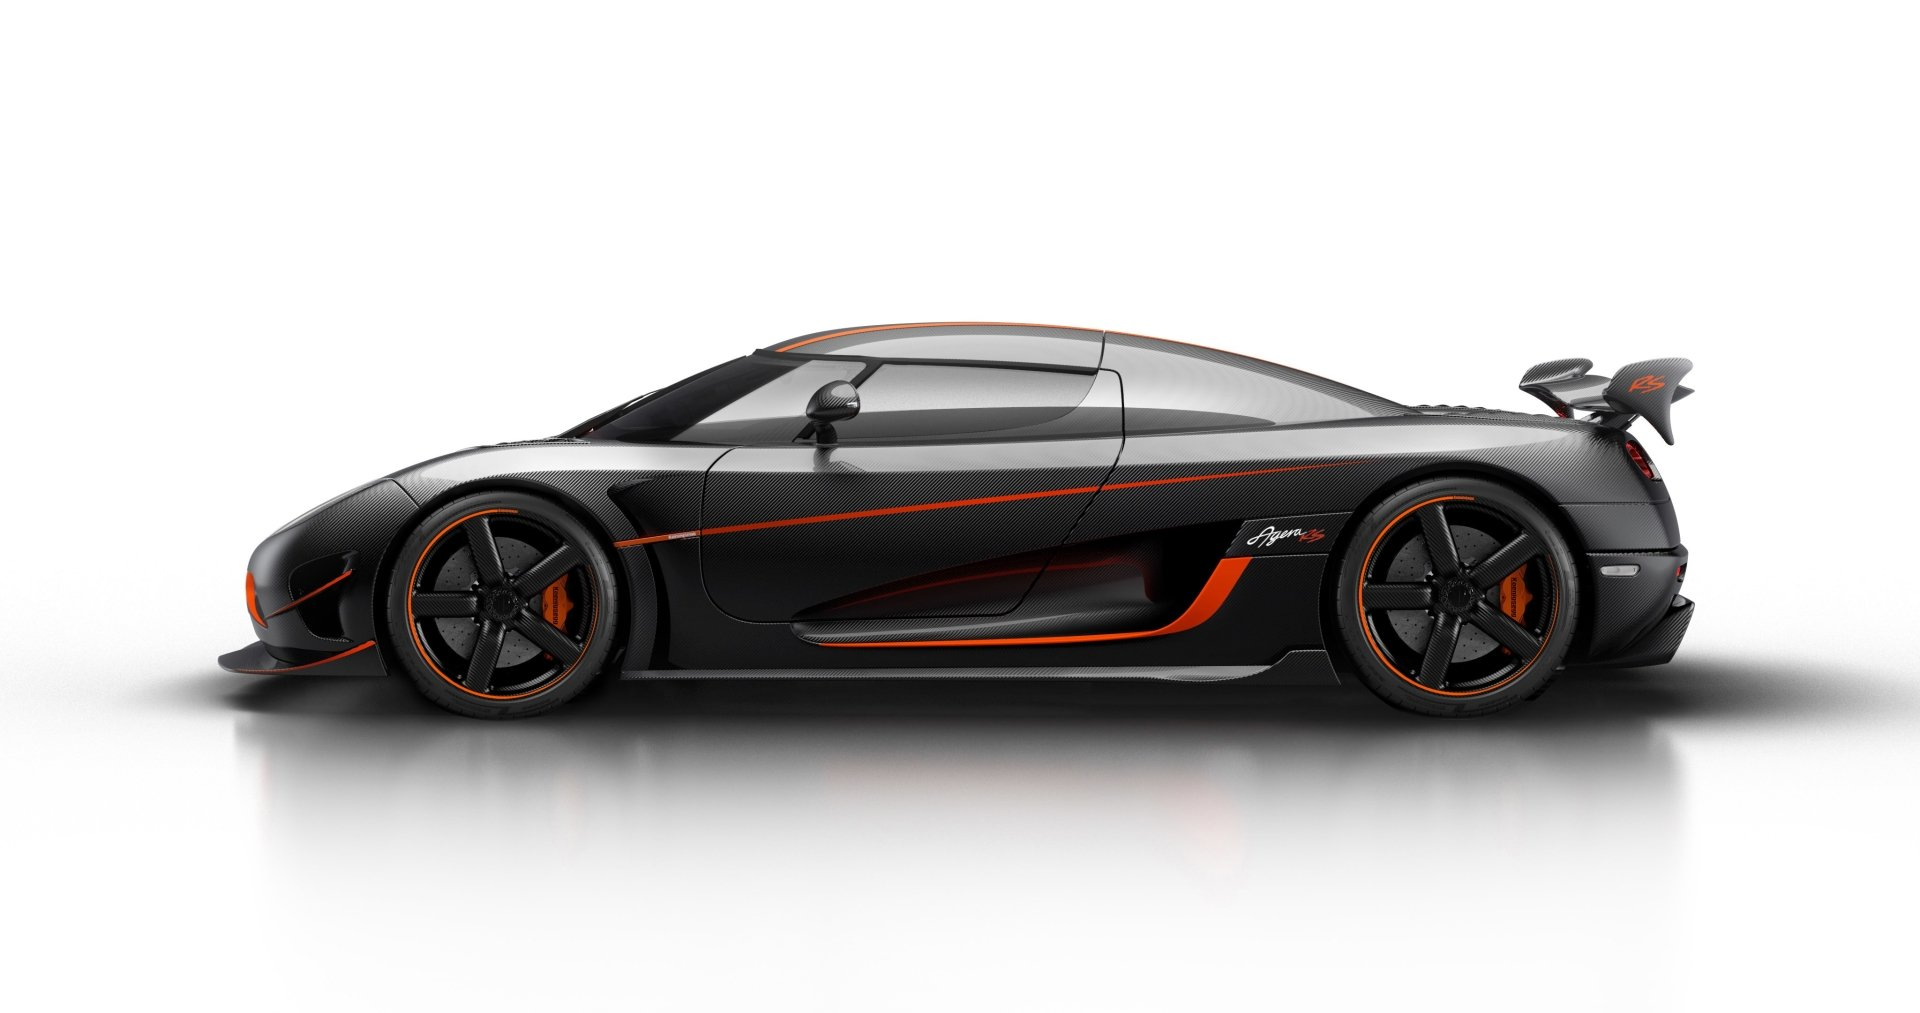 Vehicles - Koenigsegg Agera  Koenigsegg Agera RS Sport Car Hypercar Black Car Wallpaper